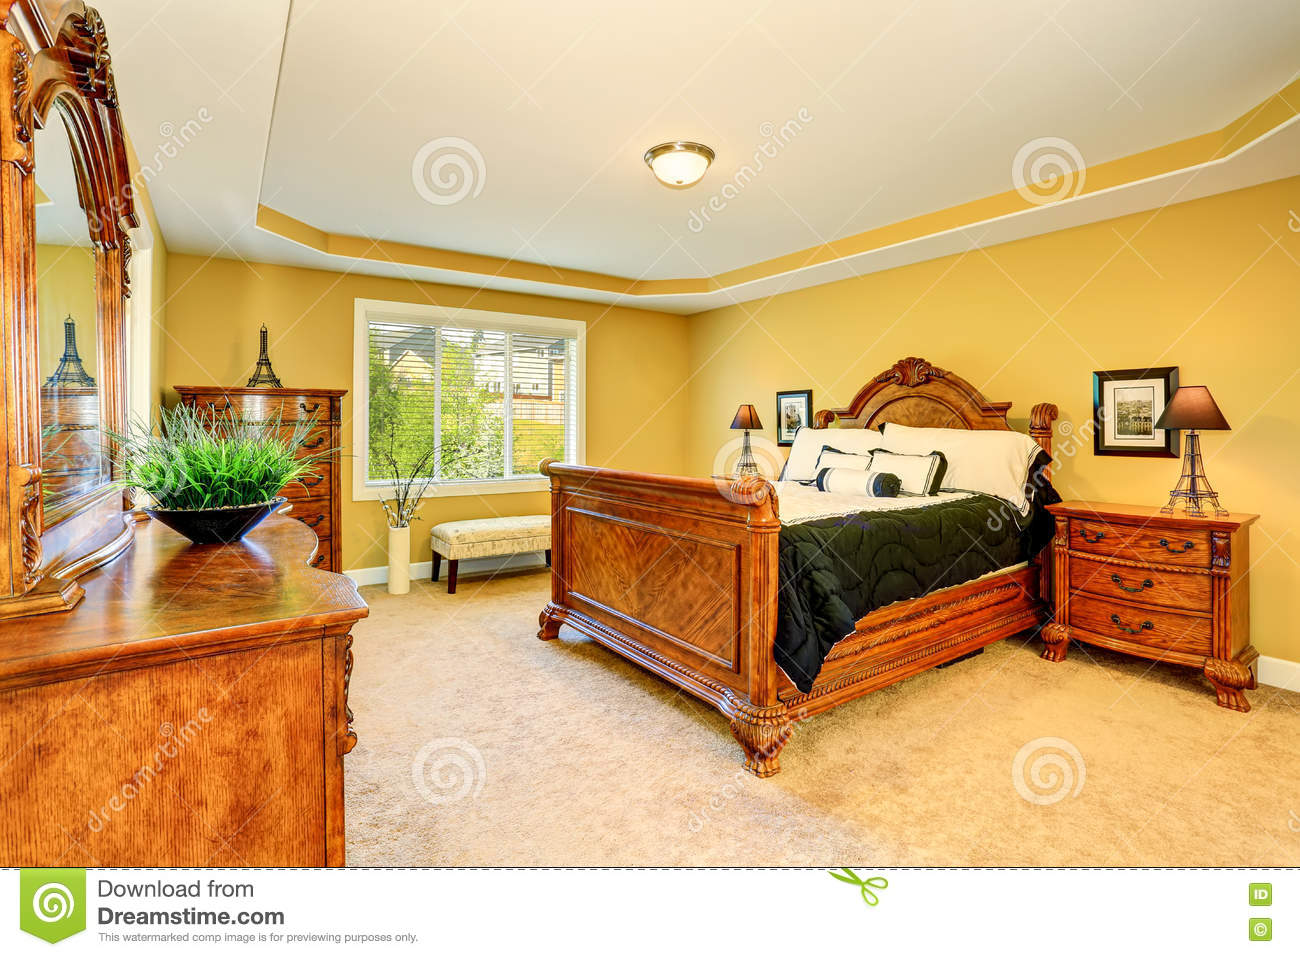 Gorgeous Interior of master bedroom with carved wood bed, nightstand, vanity cabinet with mirror, chest of drawers and carpet floor. Northwest, USA